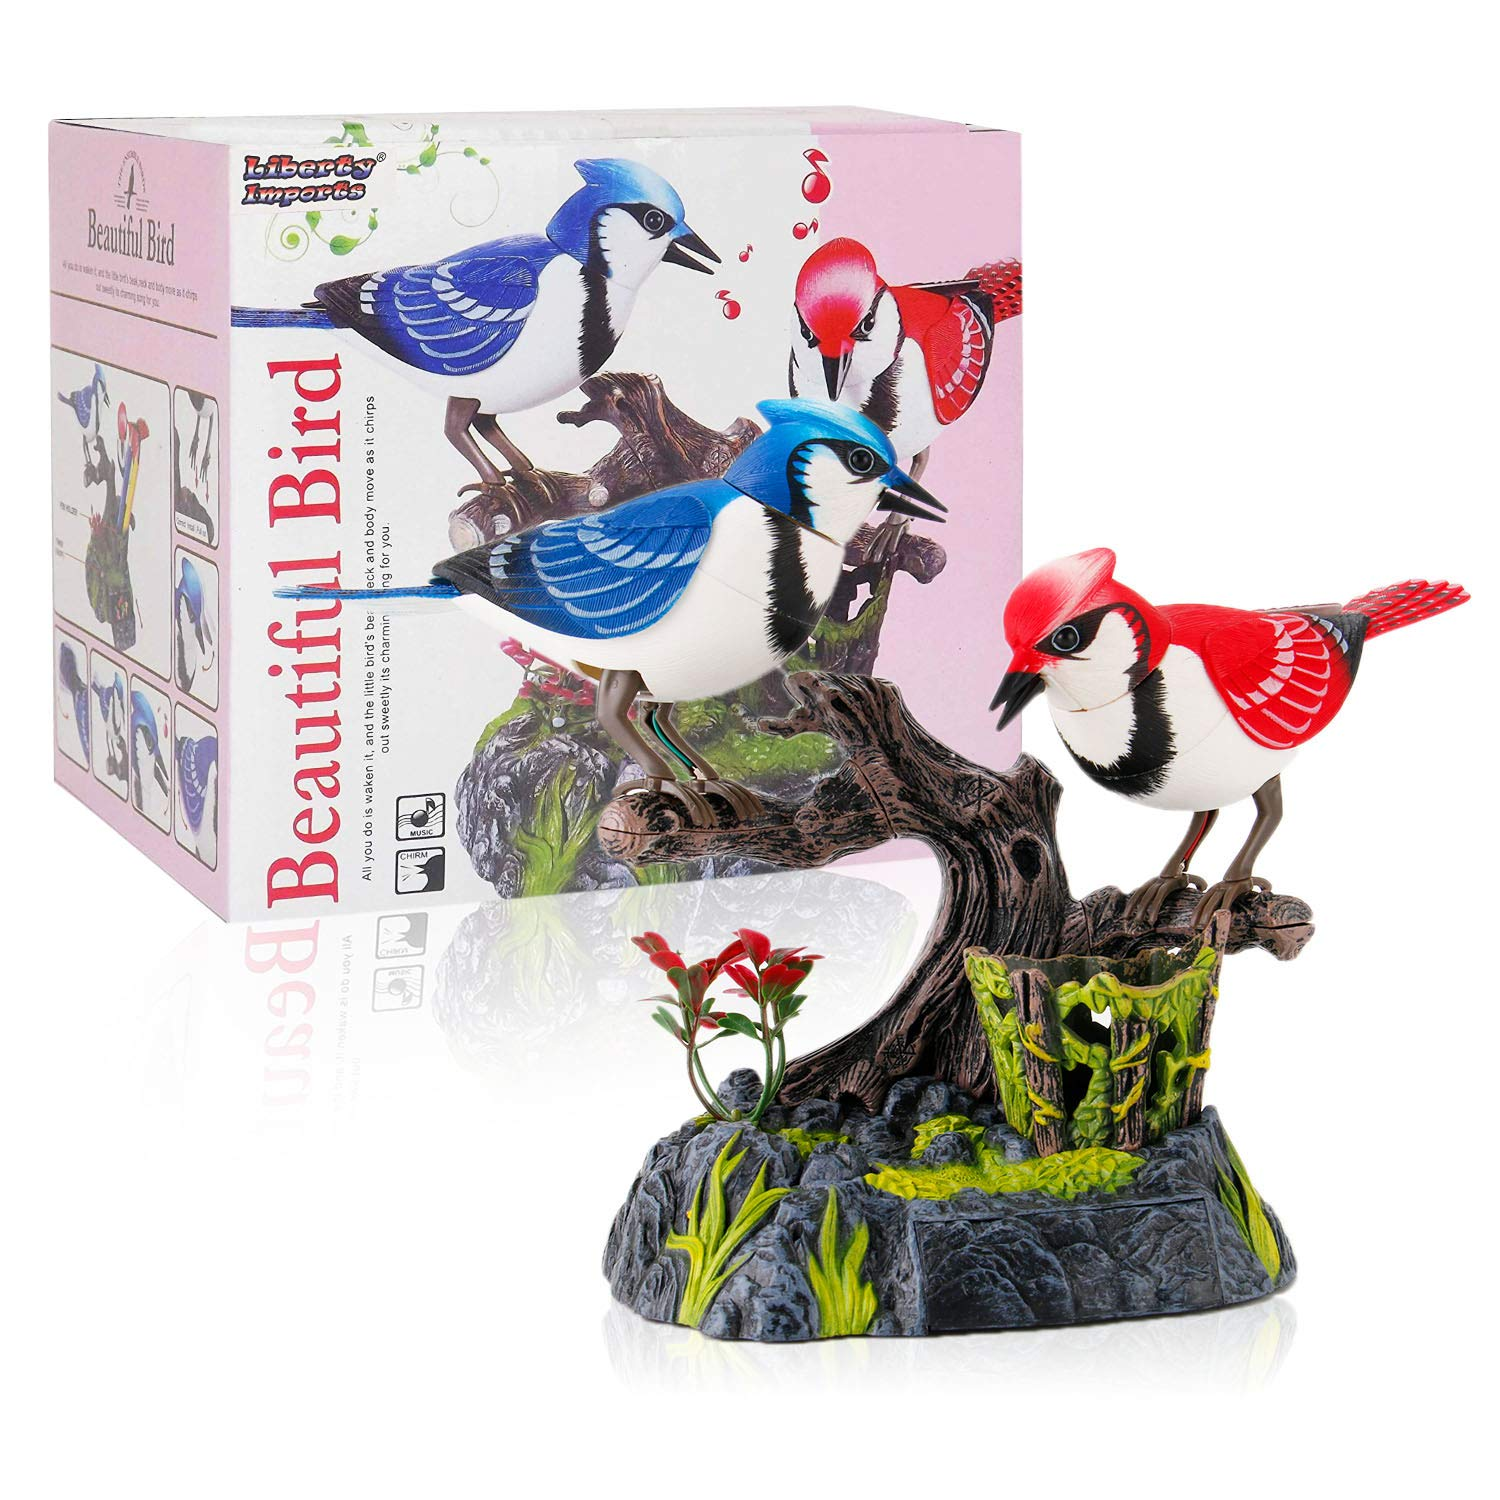 Liberty Imports Singing and Chirping Birds - Realistic Sounds and Movements (Blue Jays) by Liberty Imports (Image #2)